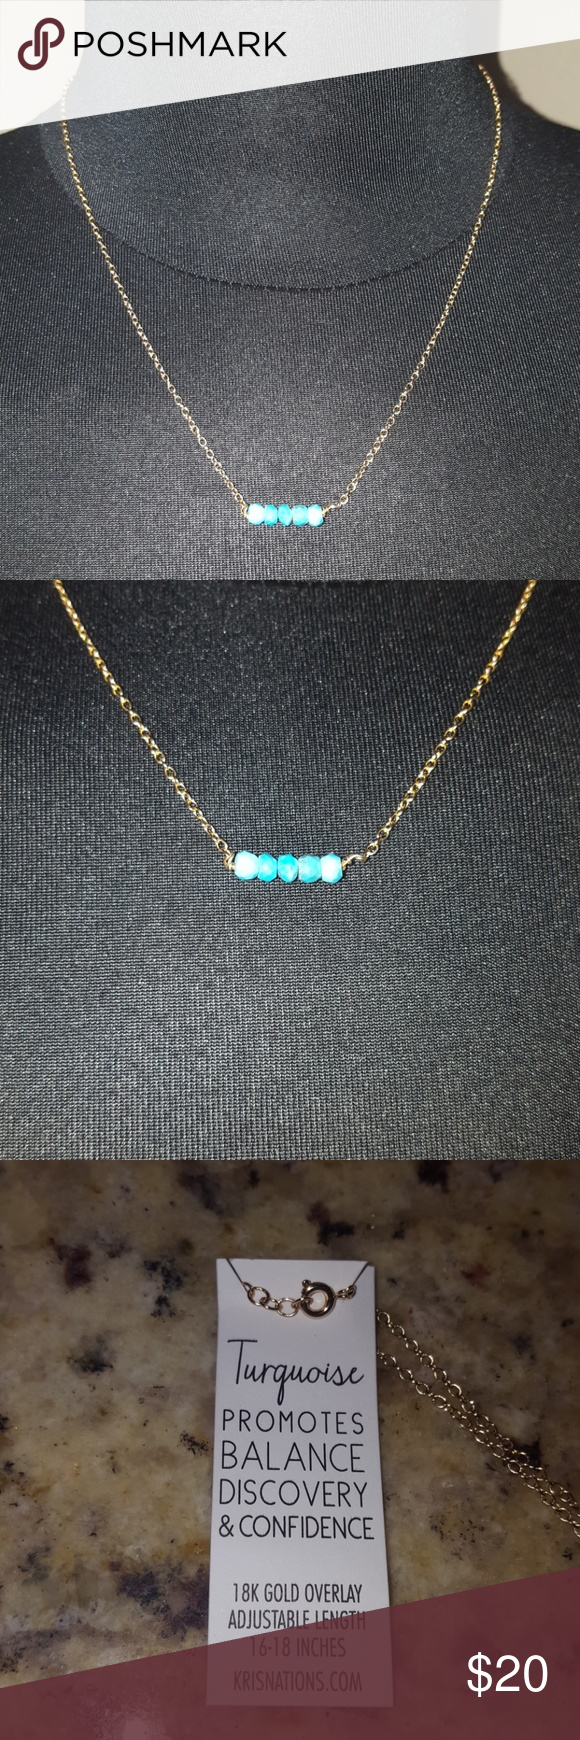 Kris Nations Turquoise Necklace Brand new 18K Gold Overlay 16-18 inches Kris Nations Jewelry Necklaces